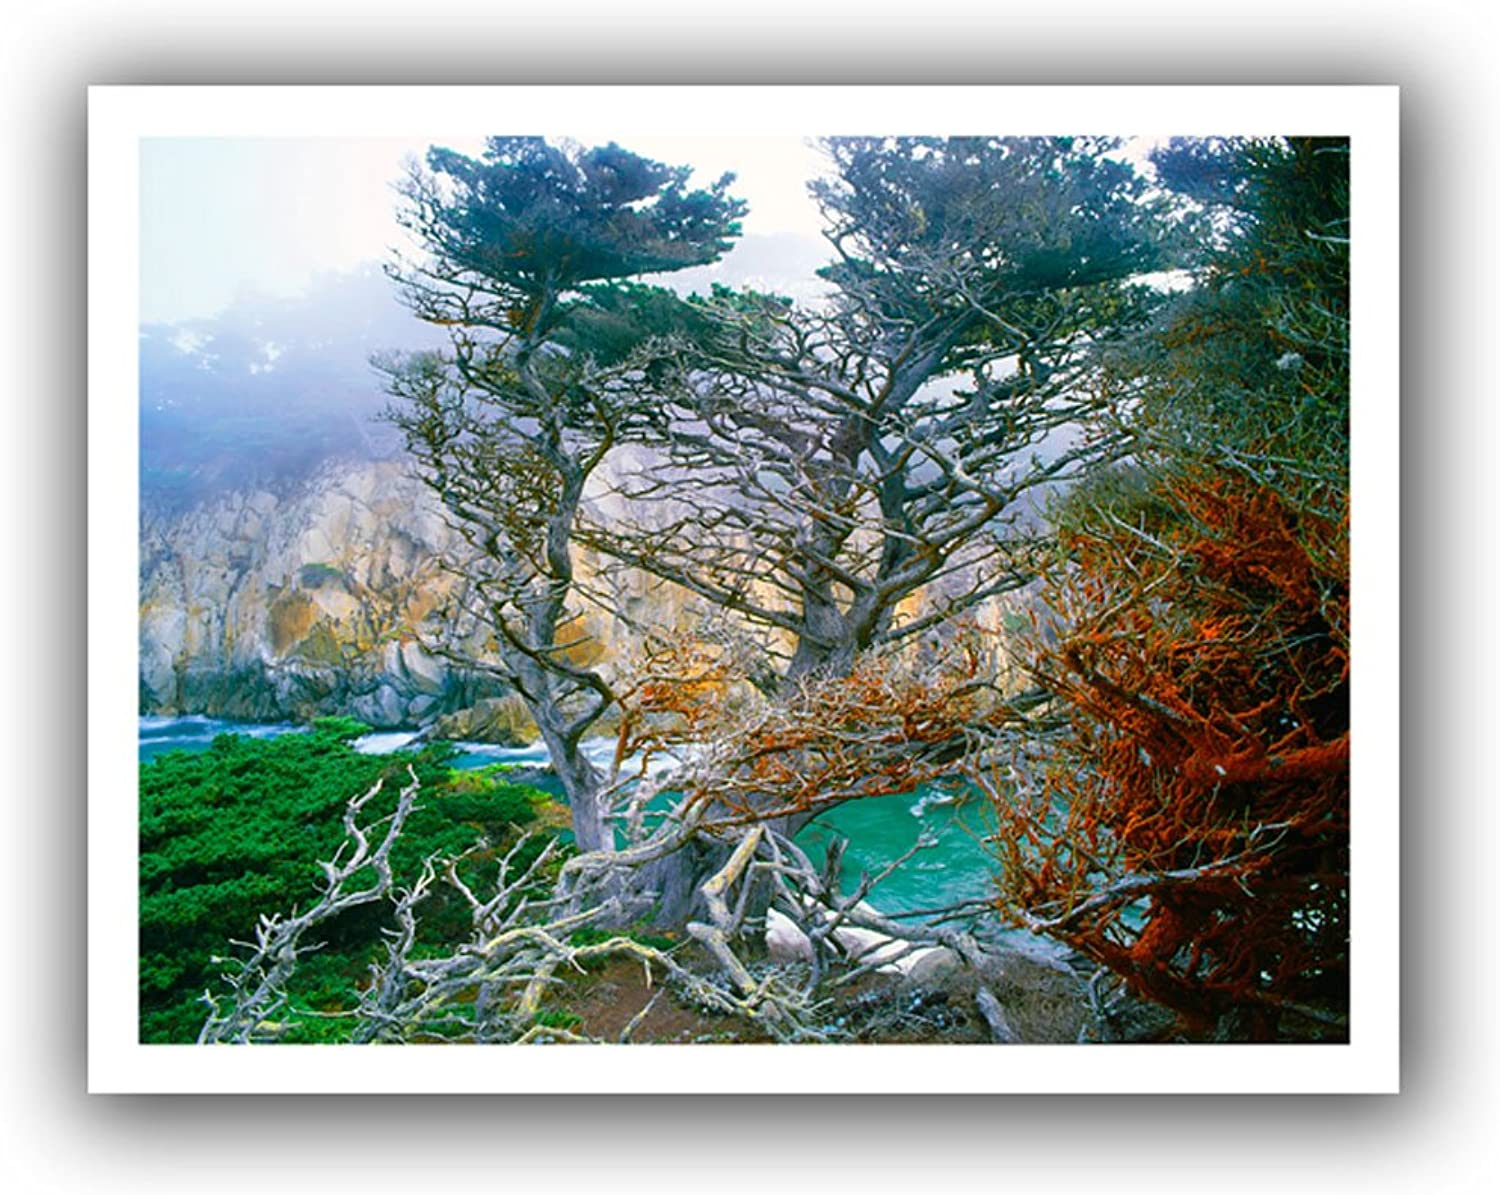 ArtWall Dean Uhlinger Whalers Cove Morning Point Lobos Unwrapped Canvas Art, 18 by 22Inch, Holds 14 by 18Inch Image